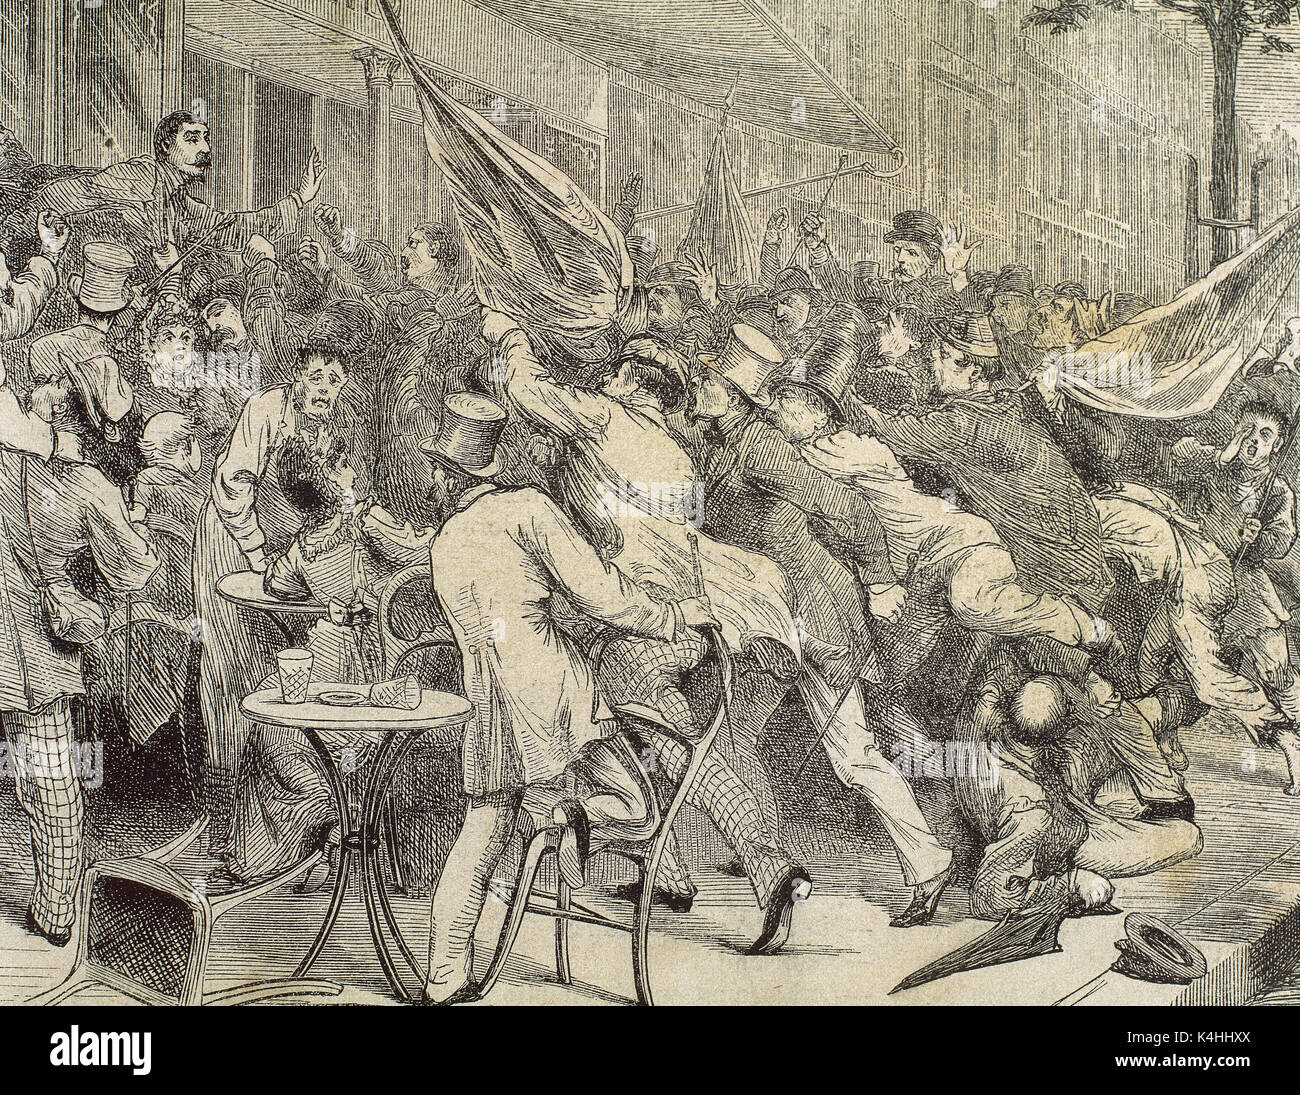 Franco-Prussian War (1870-1871). Paris. Boulevard Montmartre. Reaction of the people when it knows the defeat of the French in Forbach. Engraving of 'The Spanish and American Illustration', 1870. - Stock Image